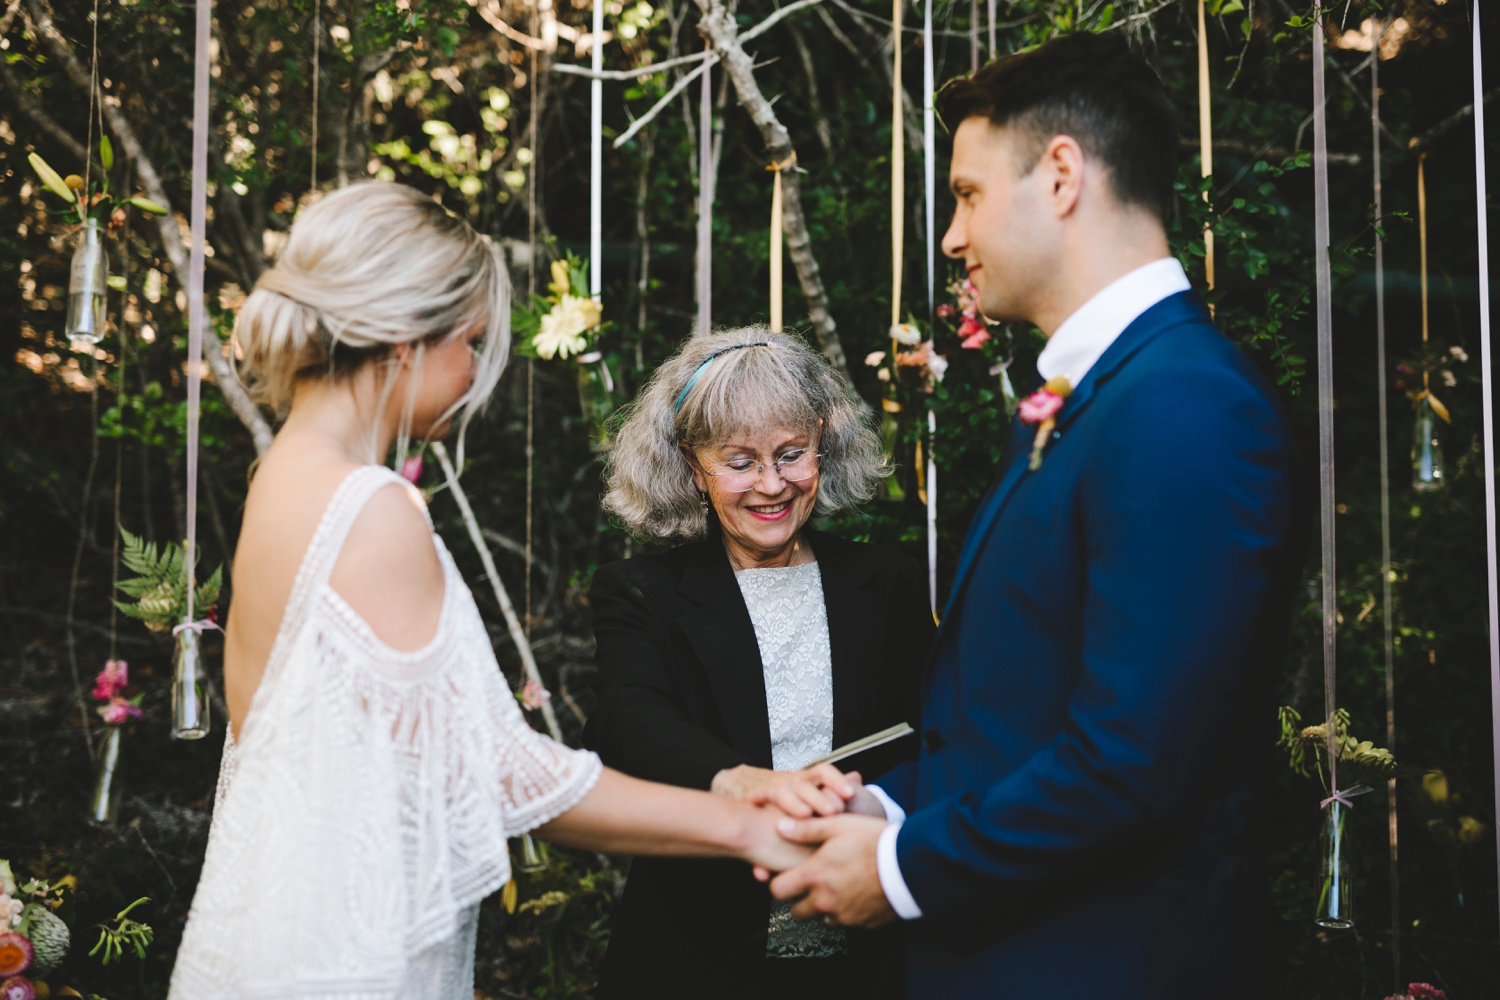 charlie_ray_photography_runaway_romance_elopement_emily_moon_plett_simple_boho_wedding_south_africa_bohemium_0053.jpg